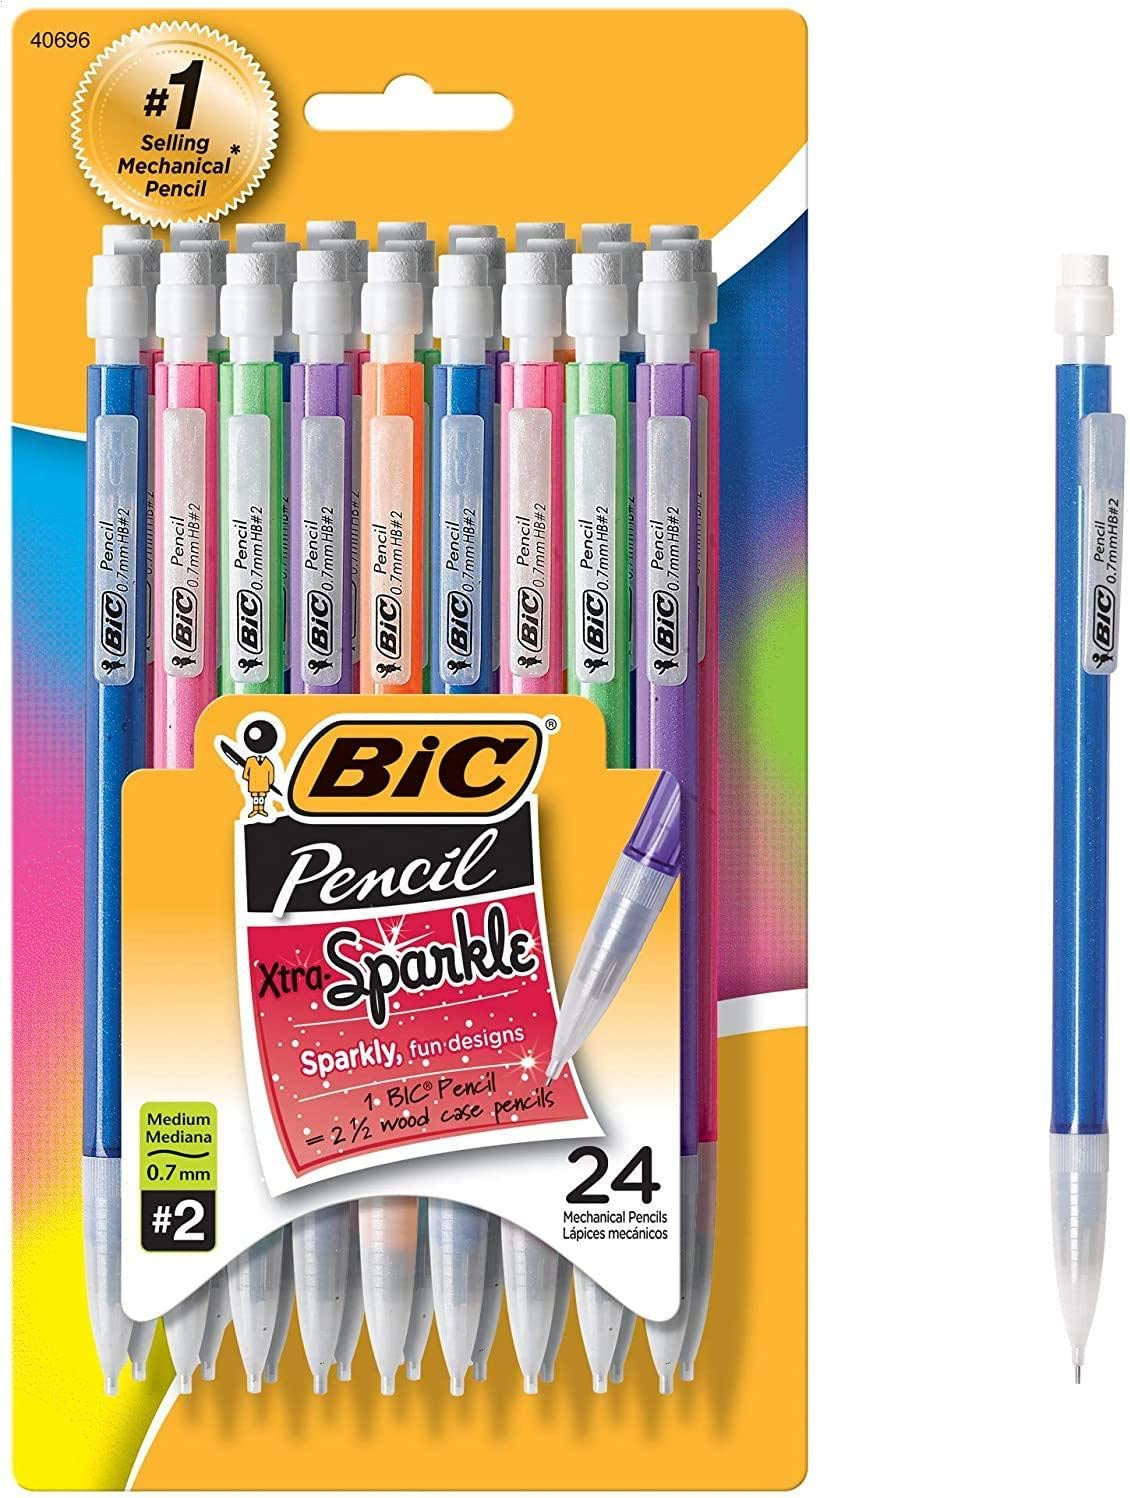 24-Count Medium Point 0.7 mm 24-Count Xtra-Sparkle Mechanical Pencil Refillable Design for Long-Lasting Use 2 Pack